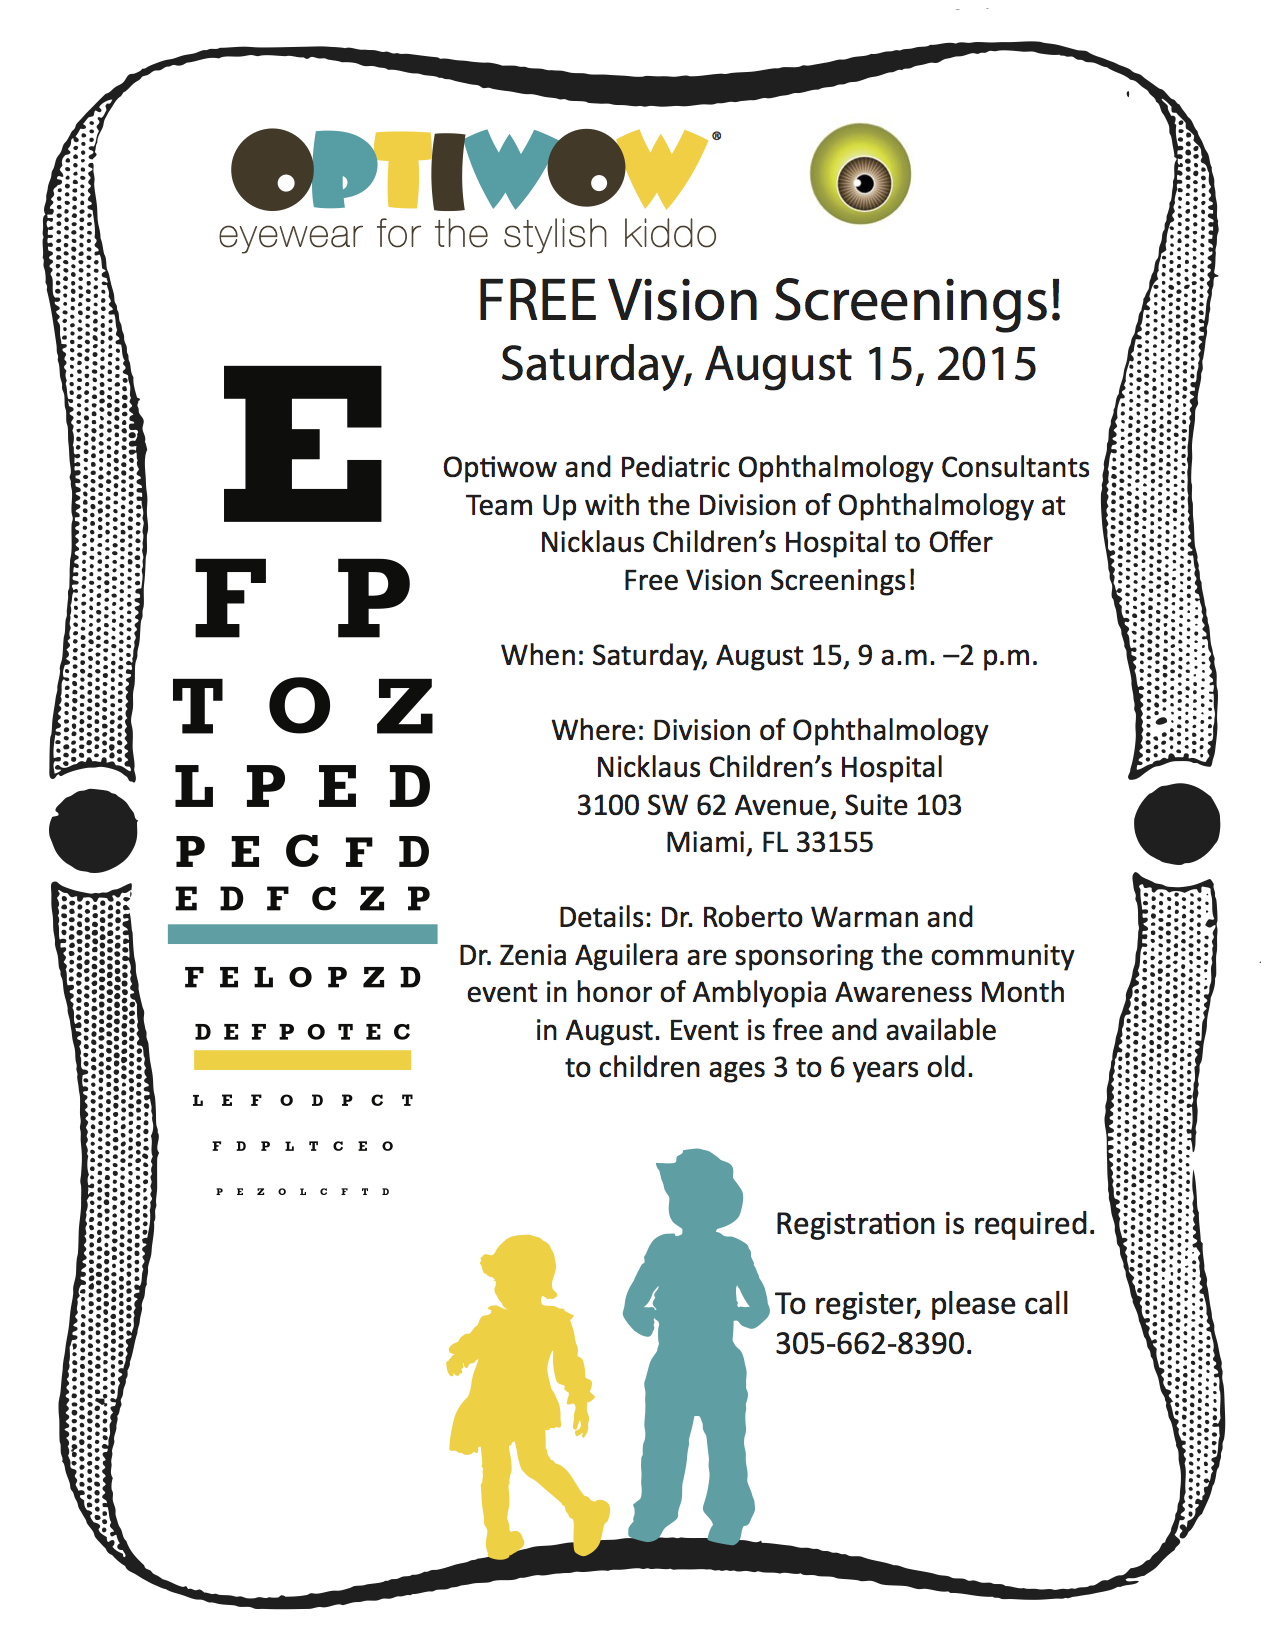 Optiwow To Offer Free Vision Screenings For Kids Aged 3 6